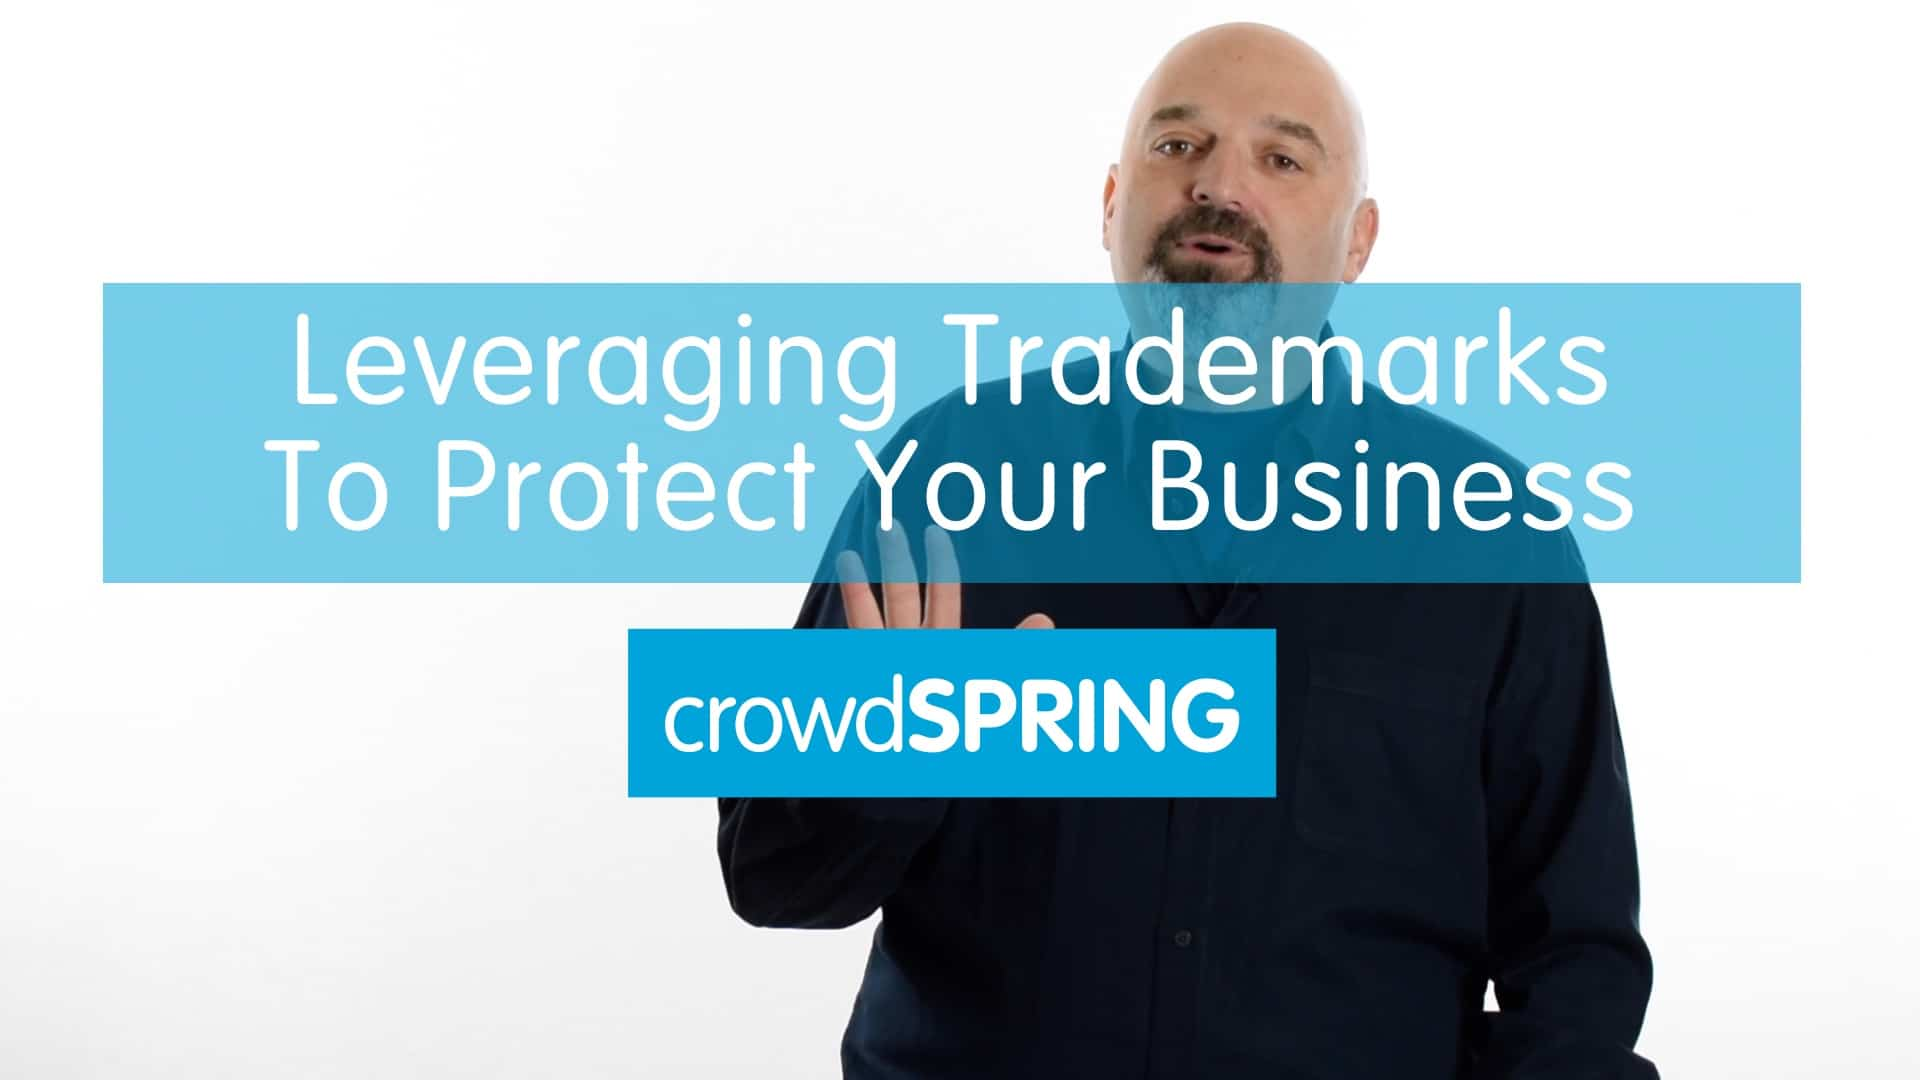 Five Tips on Leveraging Trademarks to Protect Your Business